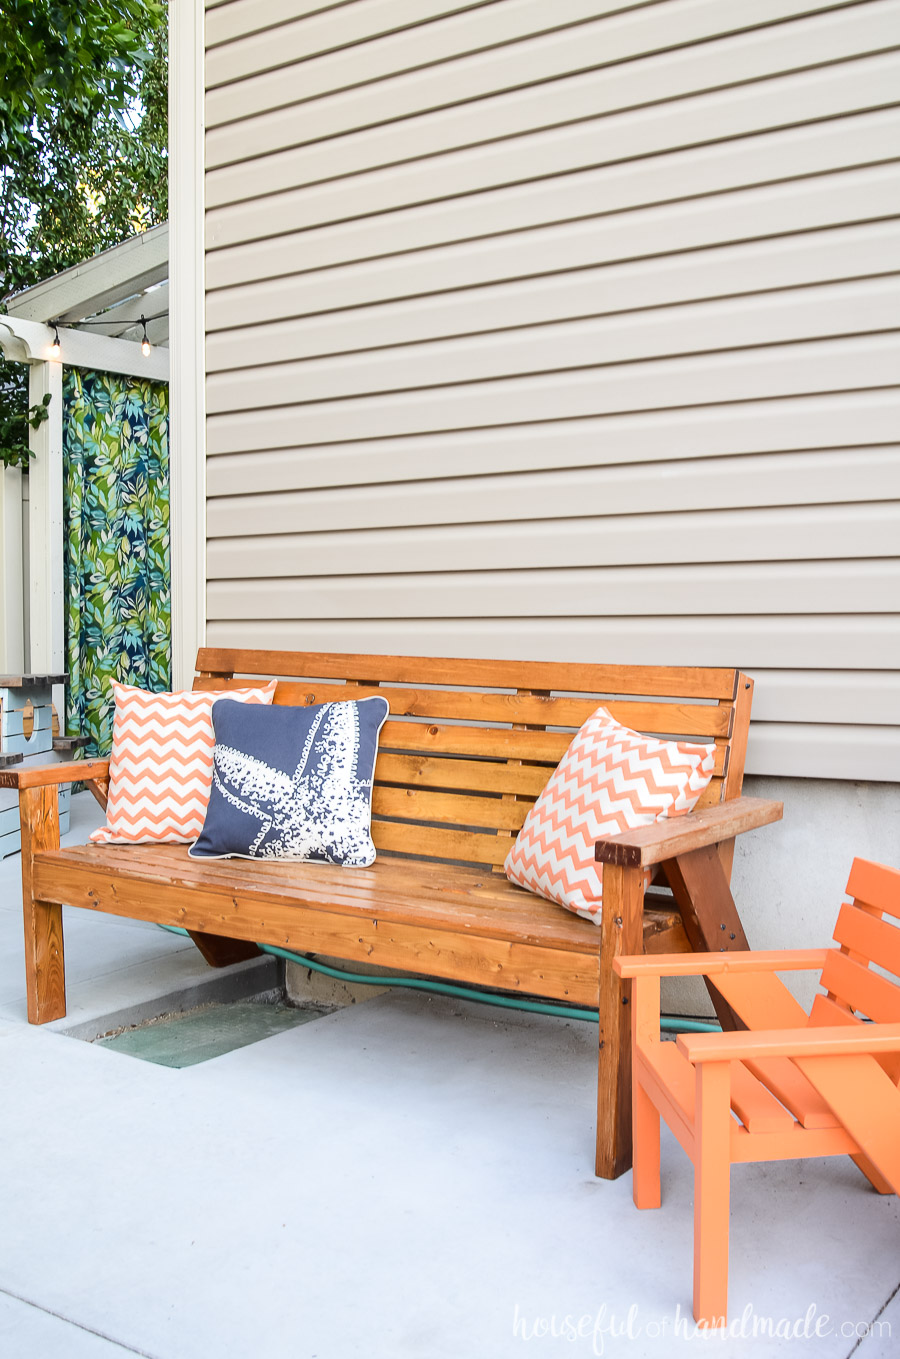 Slatted outdoor bench and kids chair with bright colored pillows make the perfect sitting area for one of our outdoor living spaces.